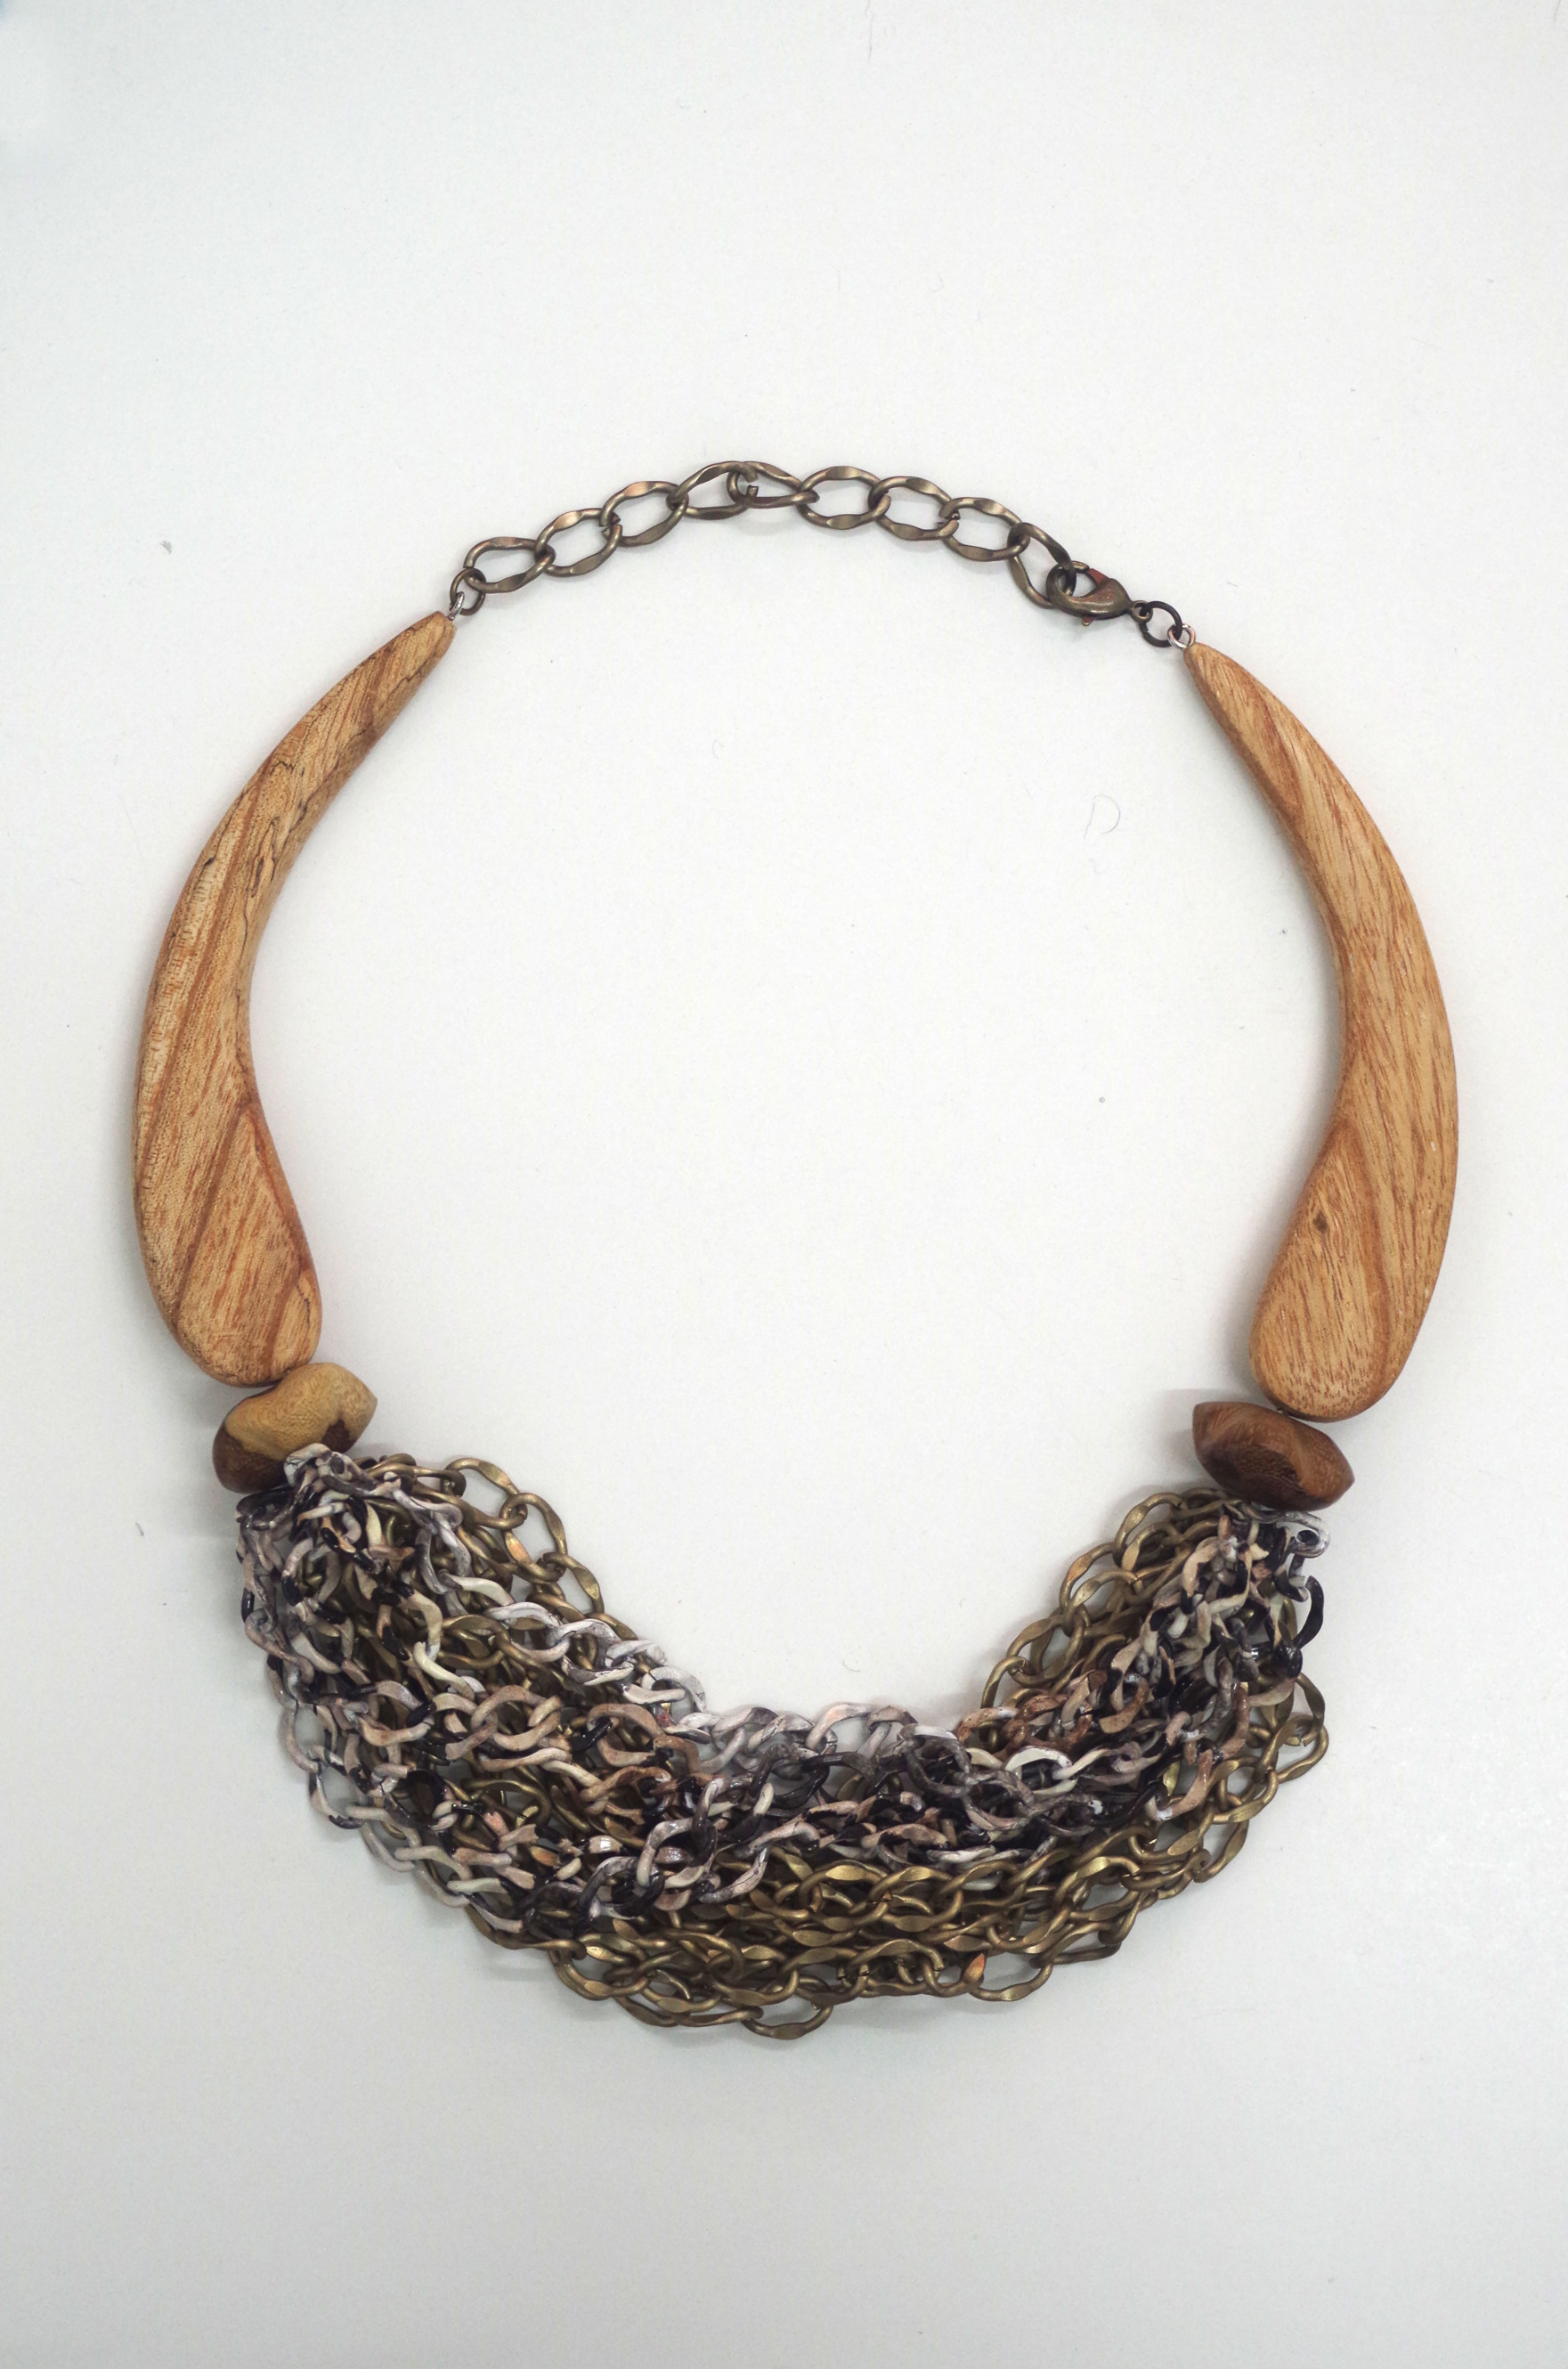 Necklace from Iris Apfel's trunk show.